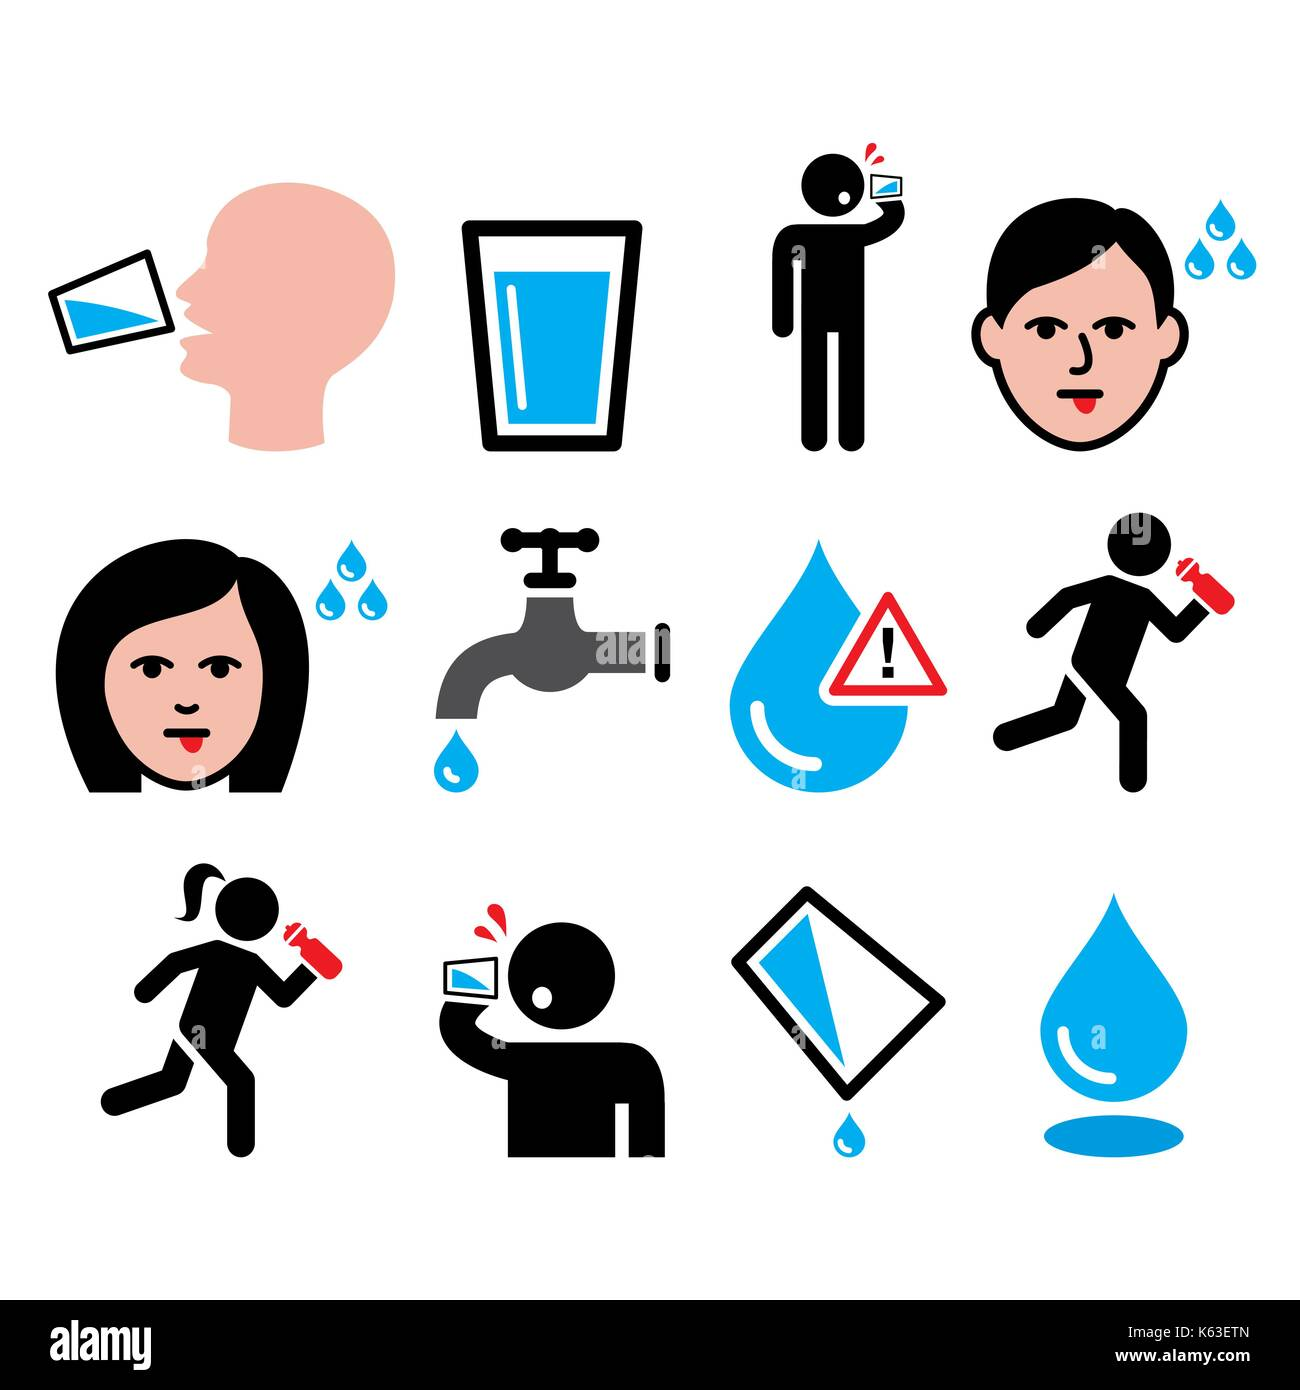 Thirsty man, dry mouth, thirst, people drinking water icons set - Stock Image